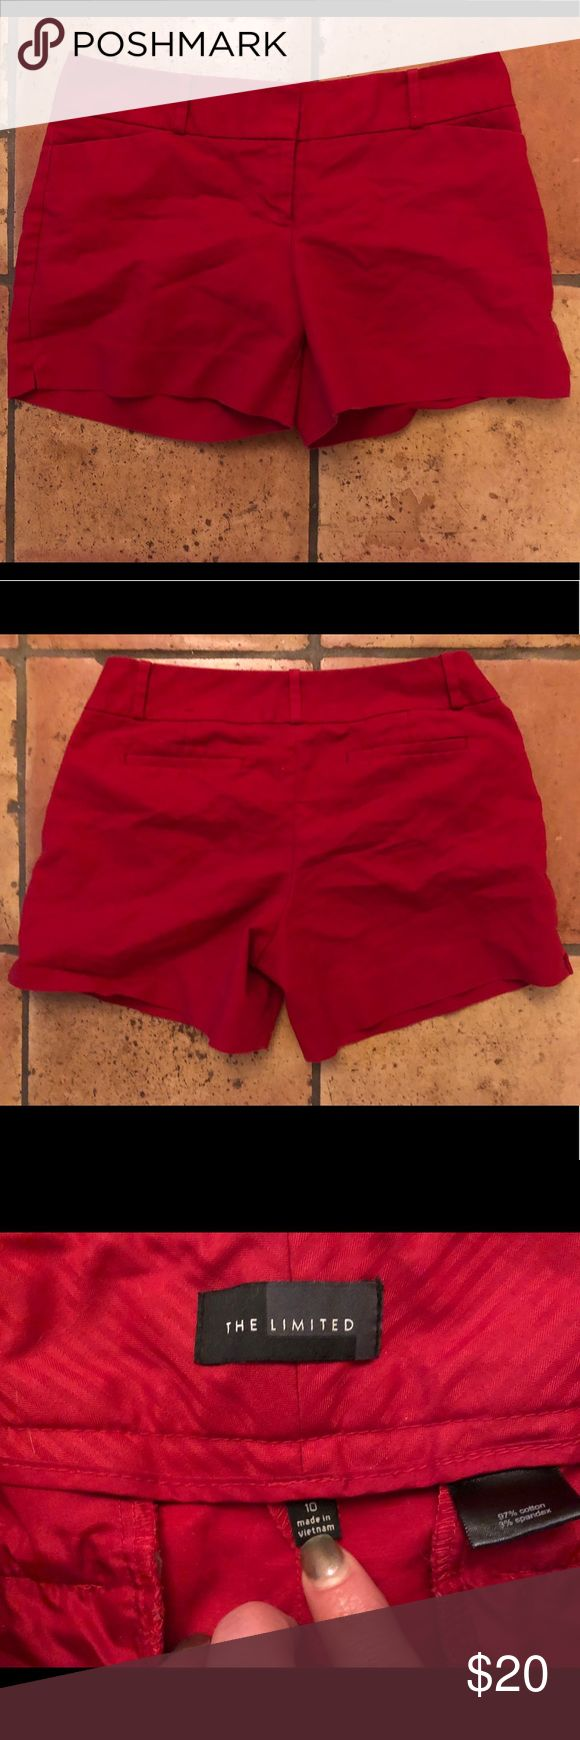 💥30% off bundles💥 The Limited Brand Dress Shorts Preowned The Limited Brand Dress Shorts. A red pair of size 10, not worn too many times. The Limited Shorts